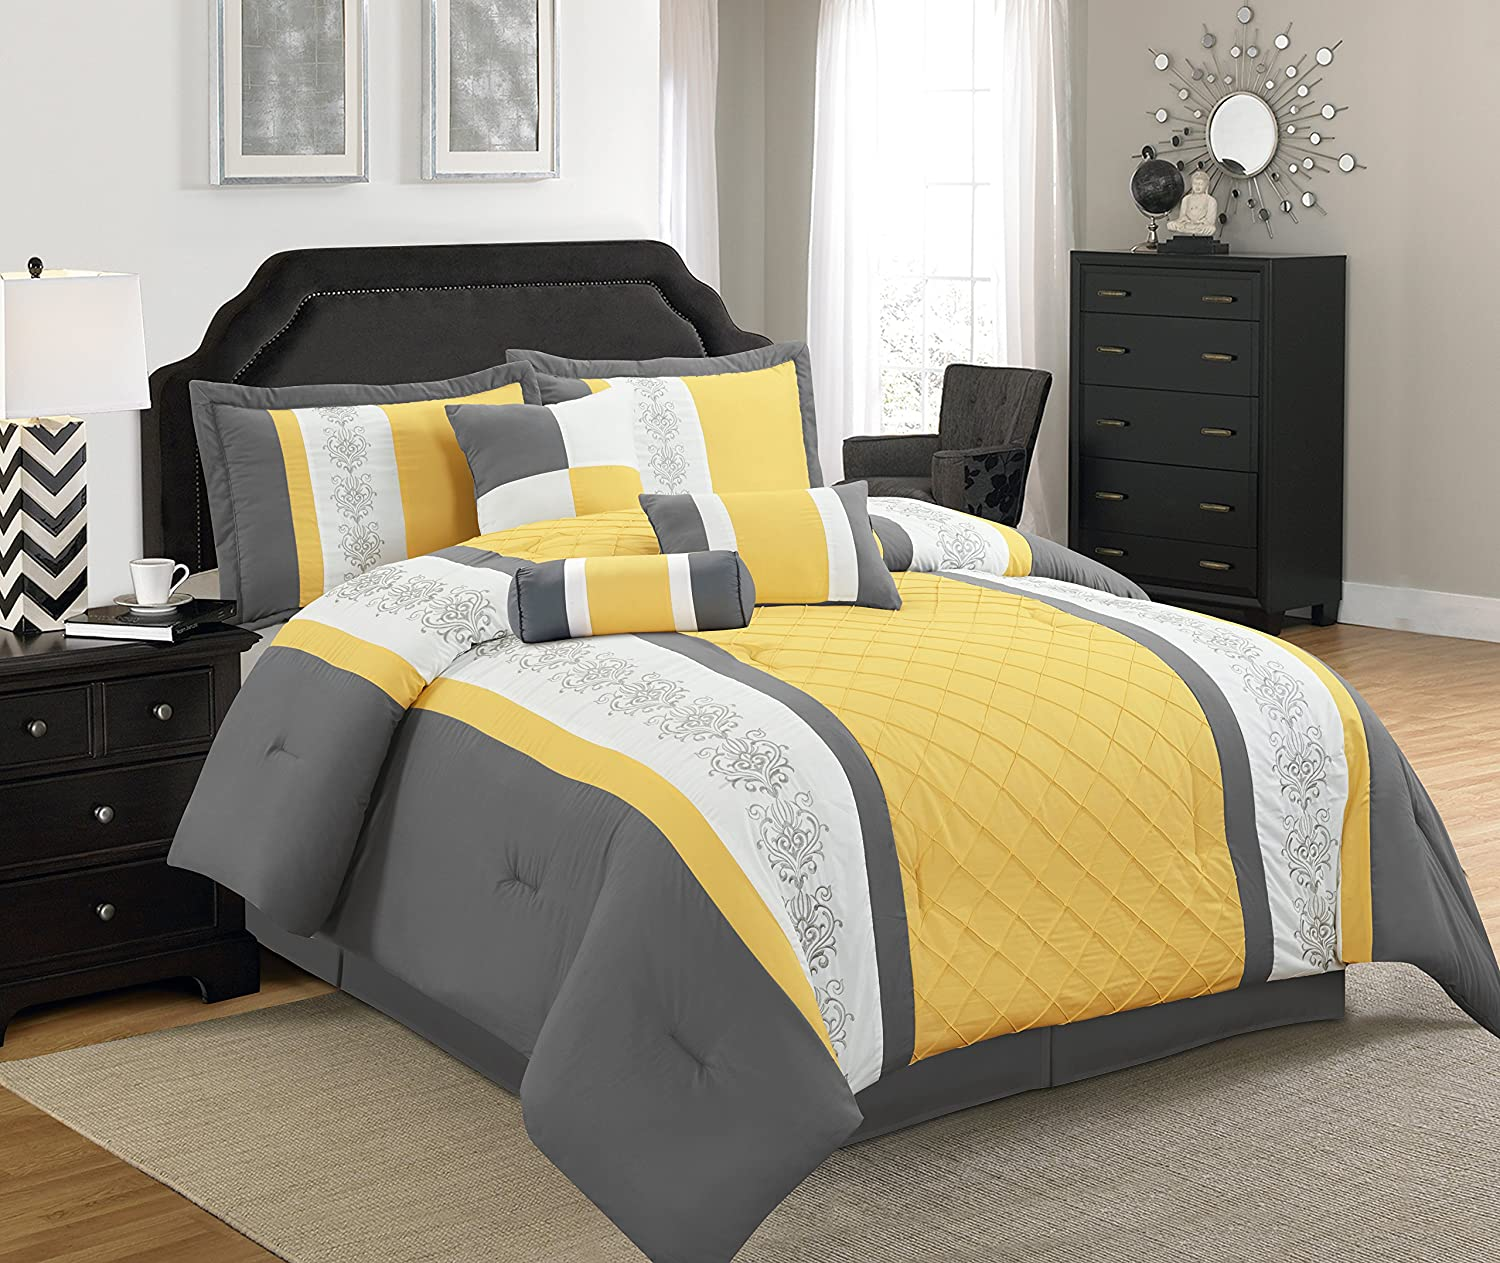 clearance white blue navy king set gold size black dark green furniture comforters comforter sets queen and brown teal cheap red grey yellow bedding burgundy twin